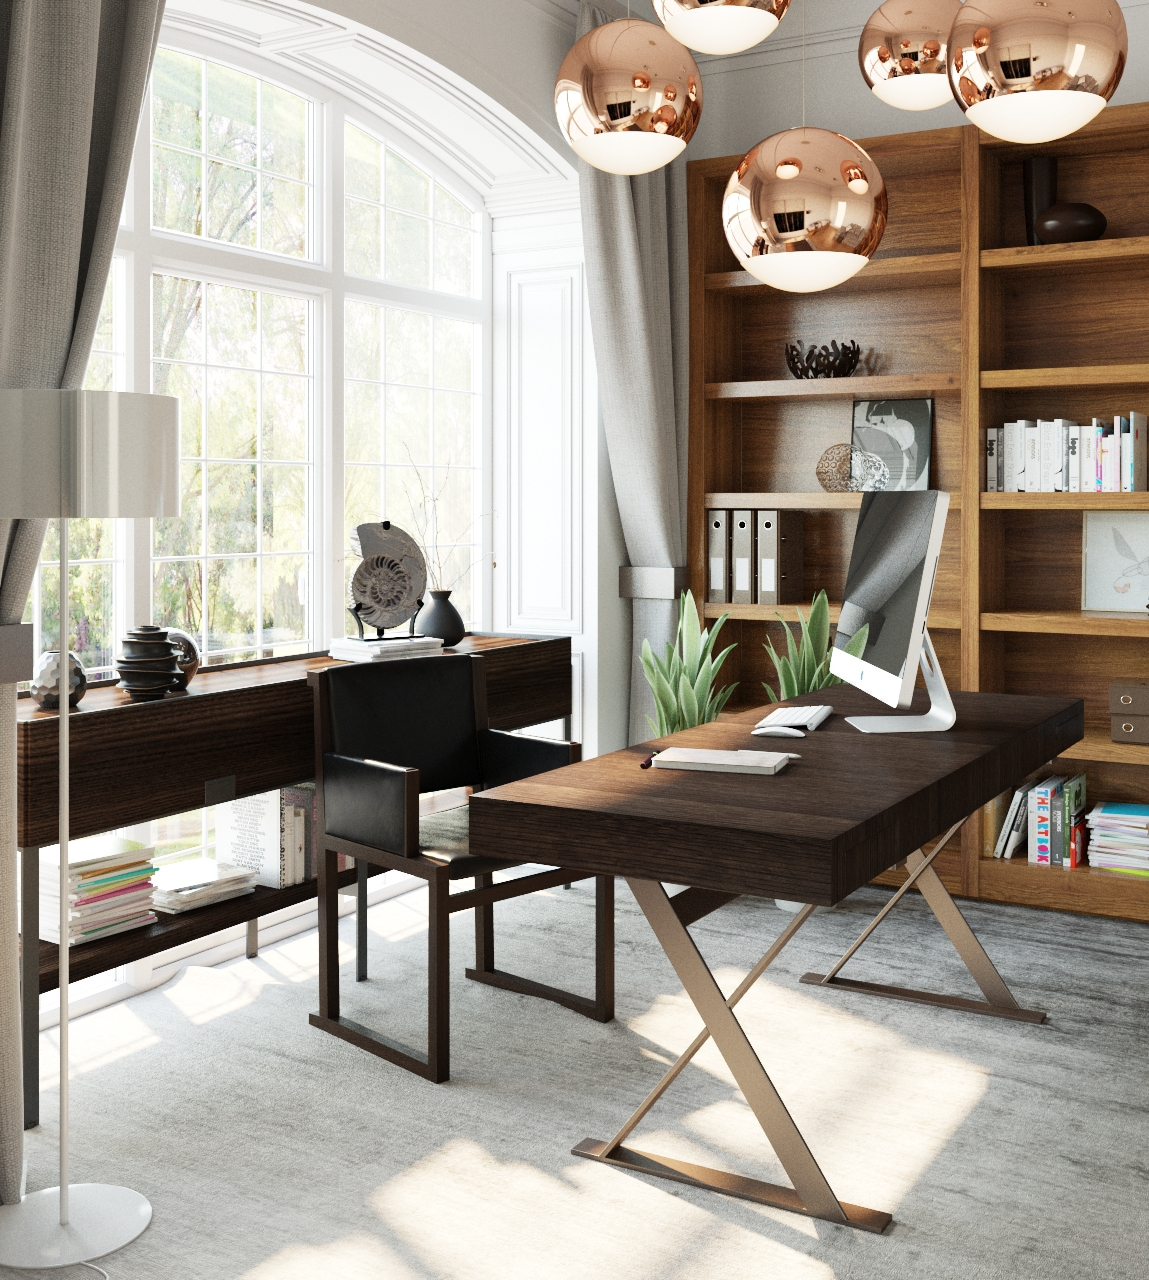 Top 21 Beach Home Decor Examples: 35 Modern Home Office Design Ideas